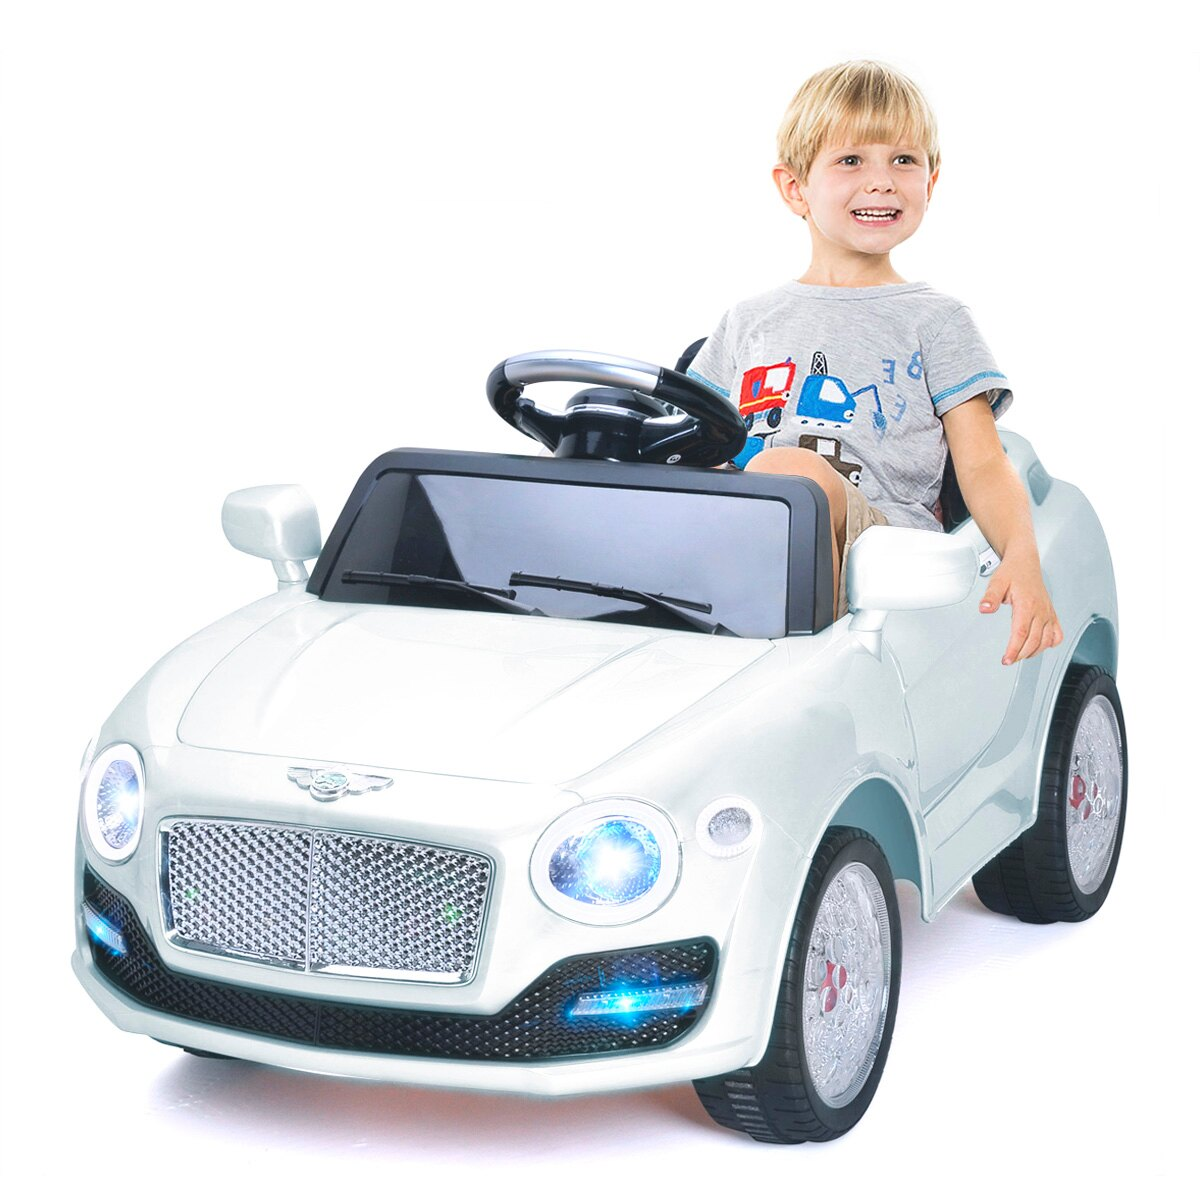 Costway 6V Kids Ride On Car Electric Battery Power RC Remote Control \u0026 Doors MP3 White  sc 1 st  Rakuten.com & Costway   Rakuten: Costway 6V Kids Ride On Car Electric Battery ...